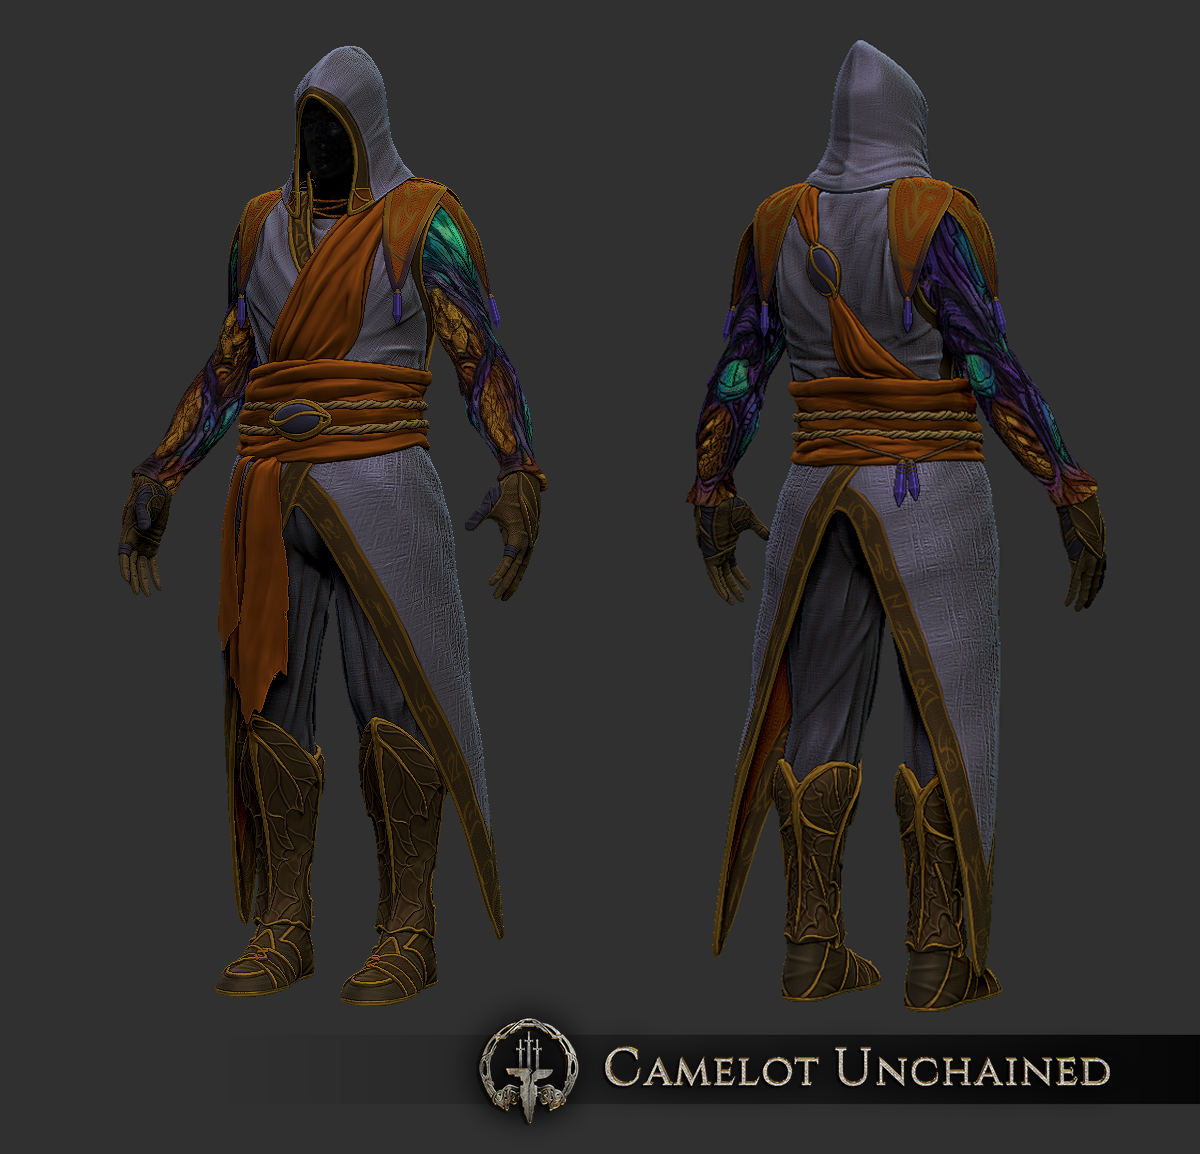 aecea Camelot Unchained Tdd Light 1200 Thus endeth April